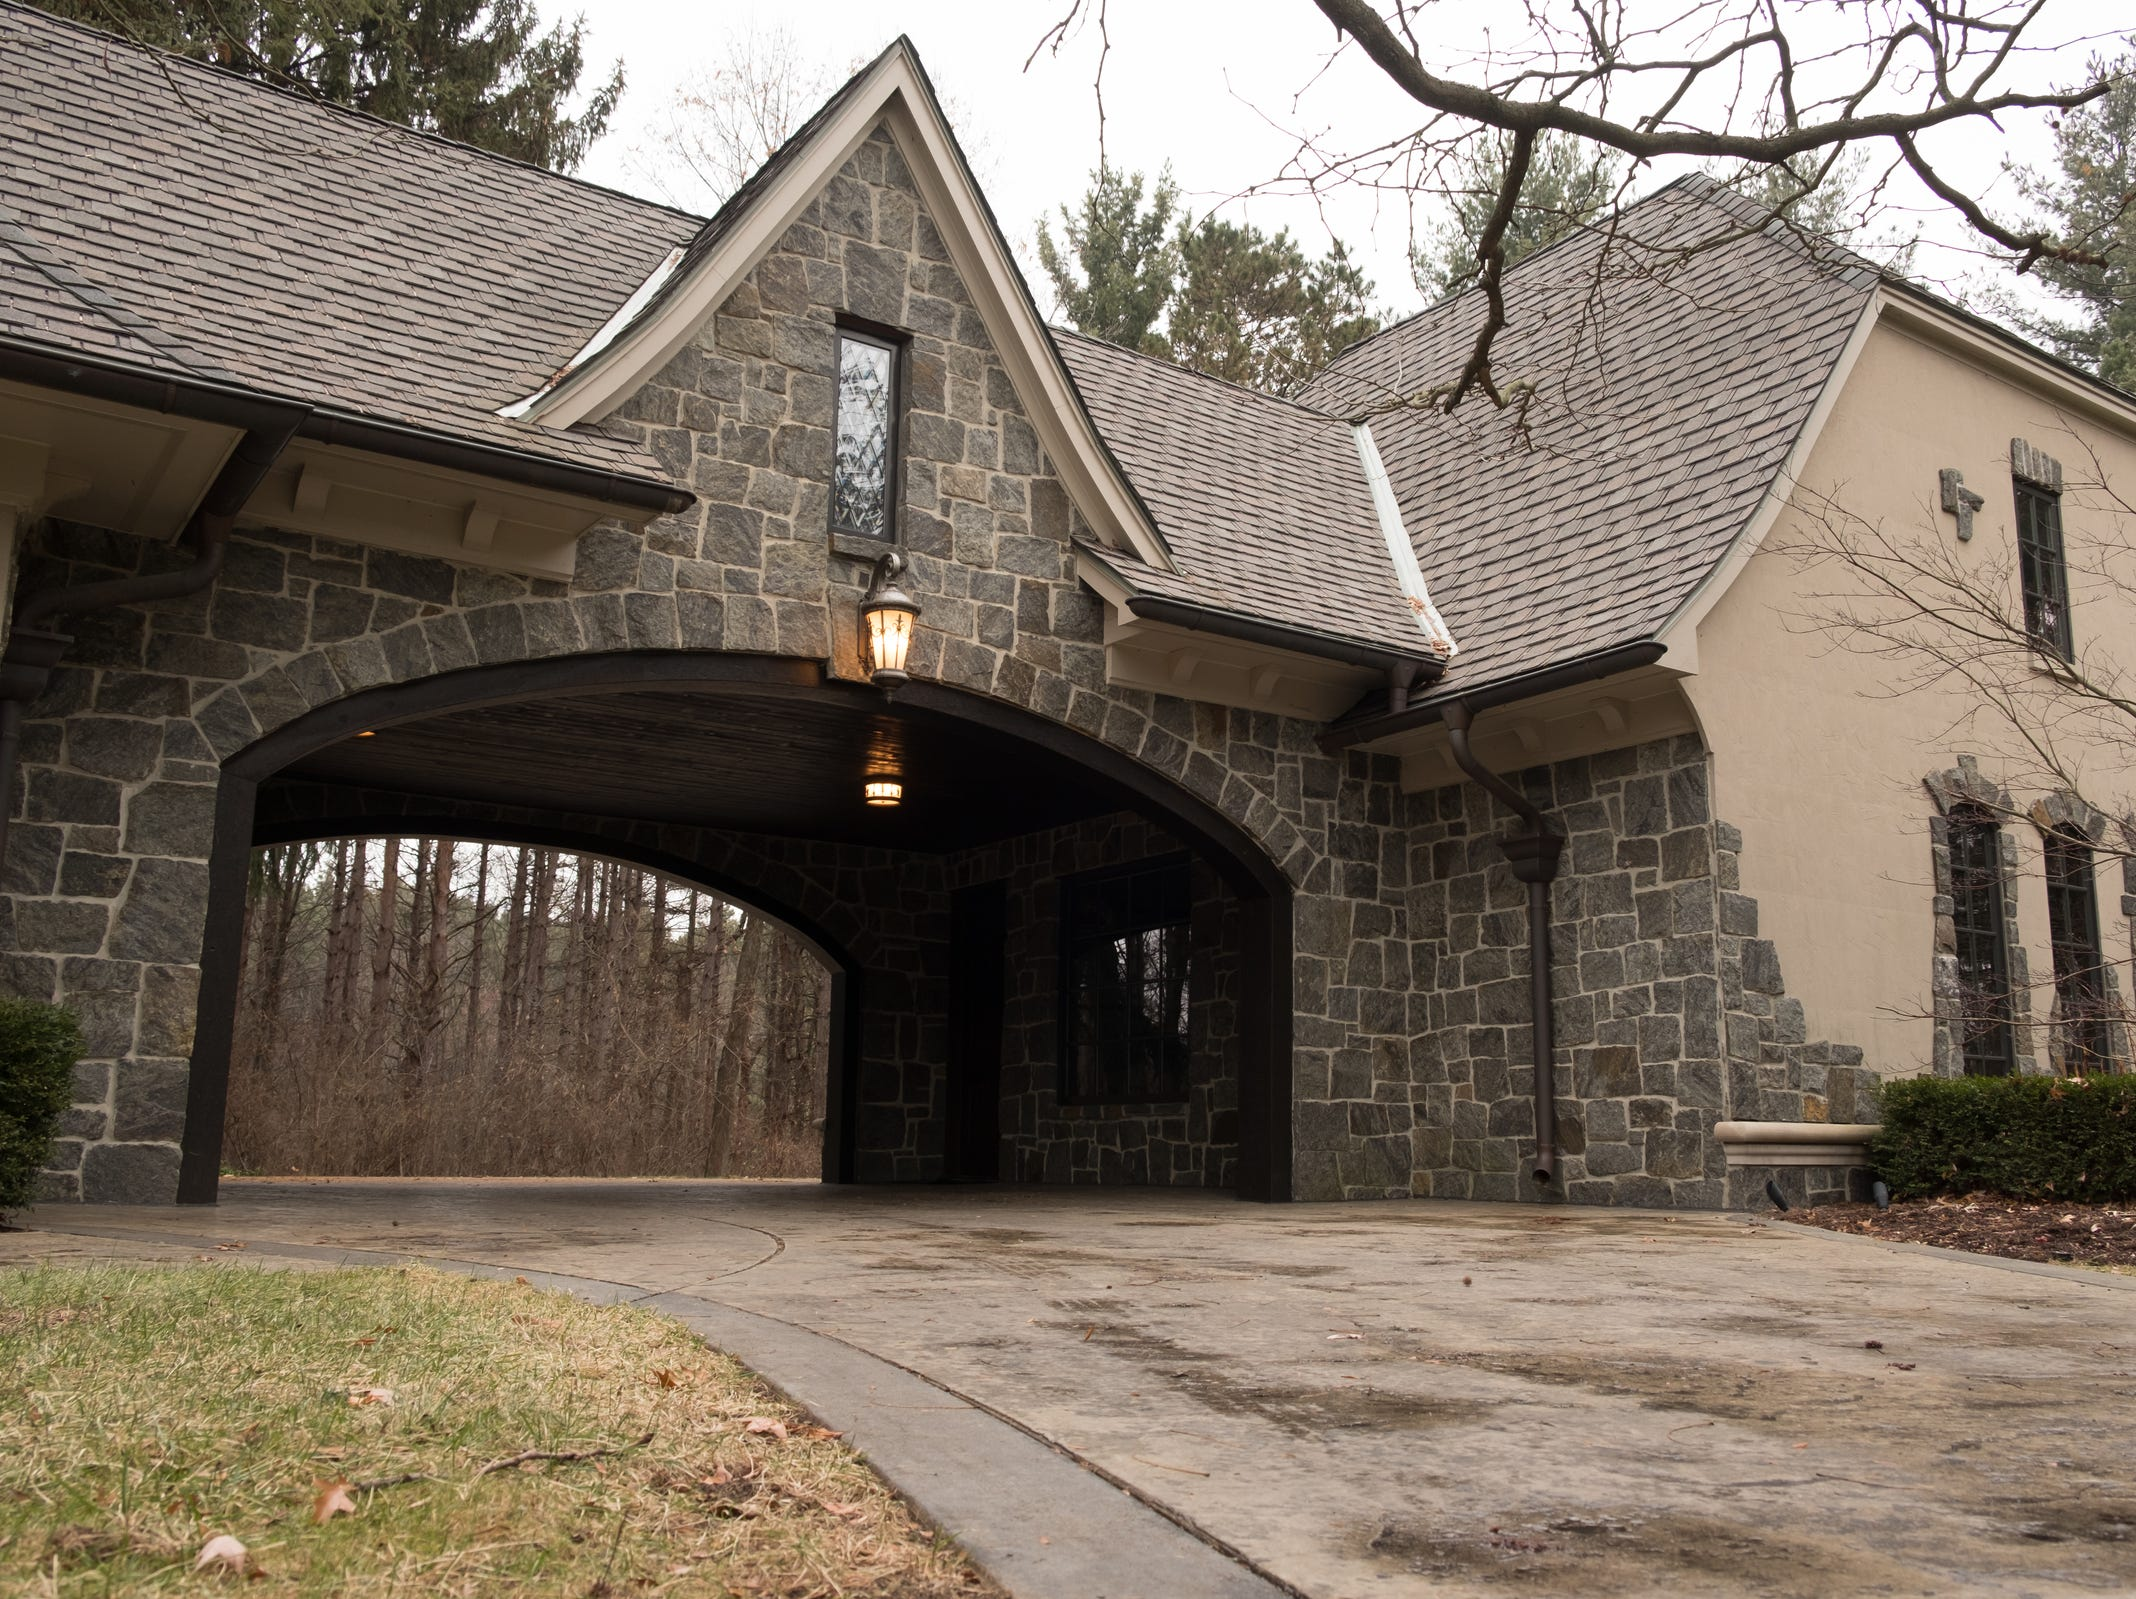 The garage portico leads to heated parking for six to eight cars, including a stone covered barn. The area over the garages has been framed in but not finished, so it can be turned into more rooms by the new owner. The home sets back into the exterior boundary line of Stoney Creek Metro Park.